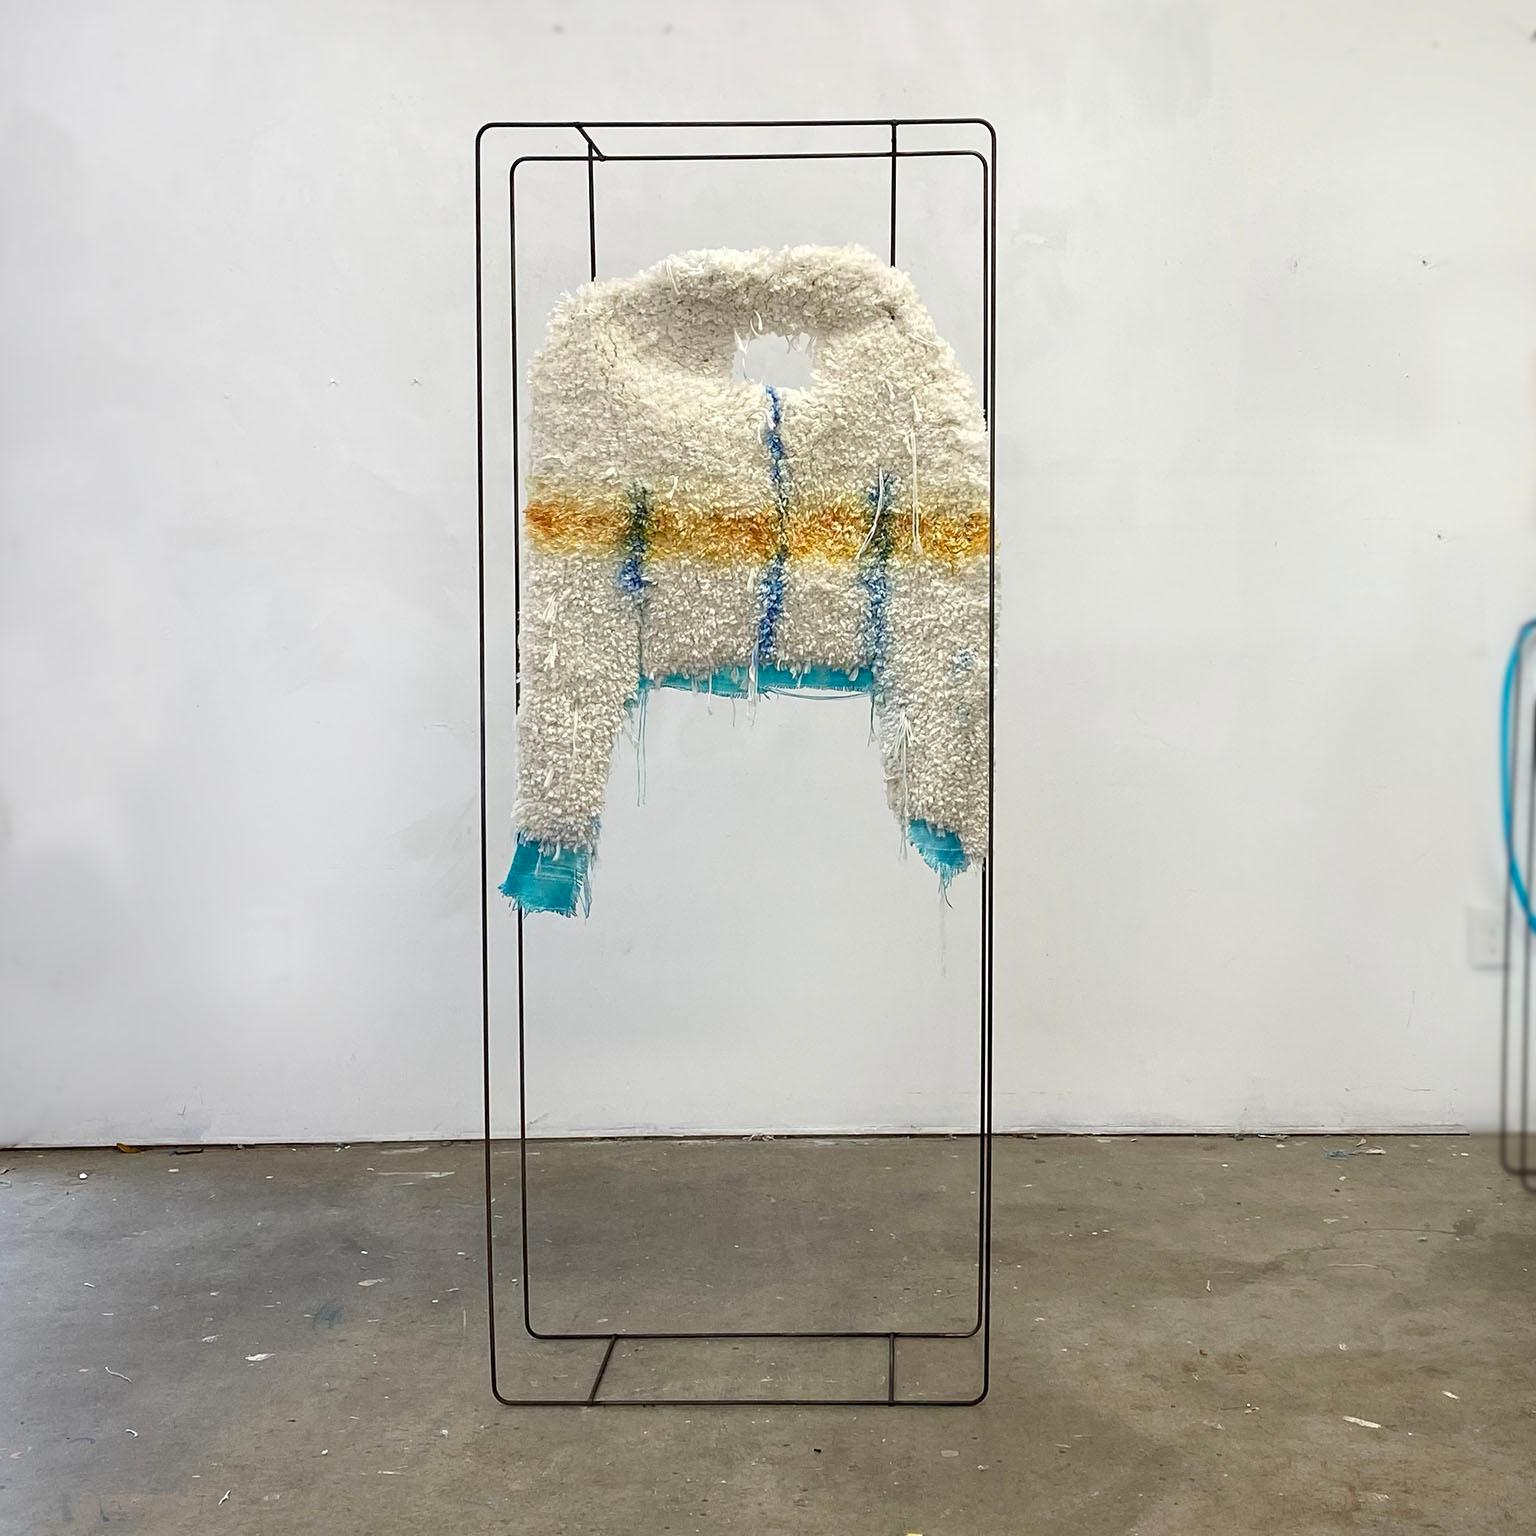 Textile Sculpture on Steel frame: 'Jacket'